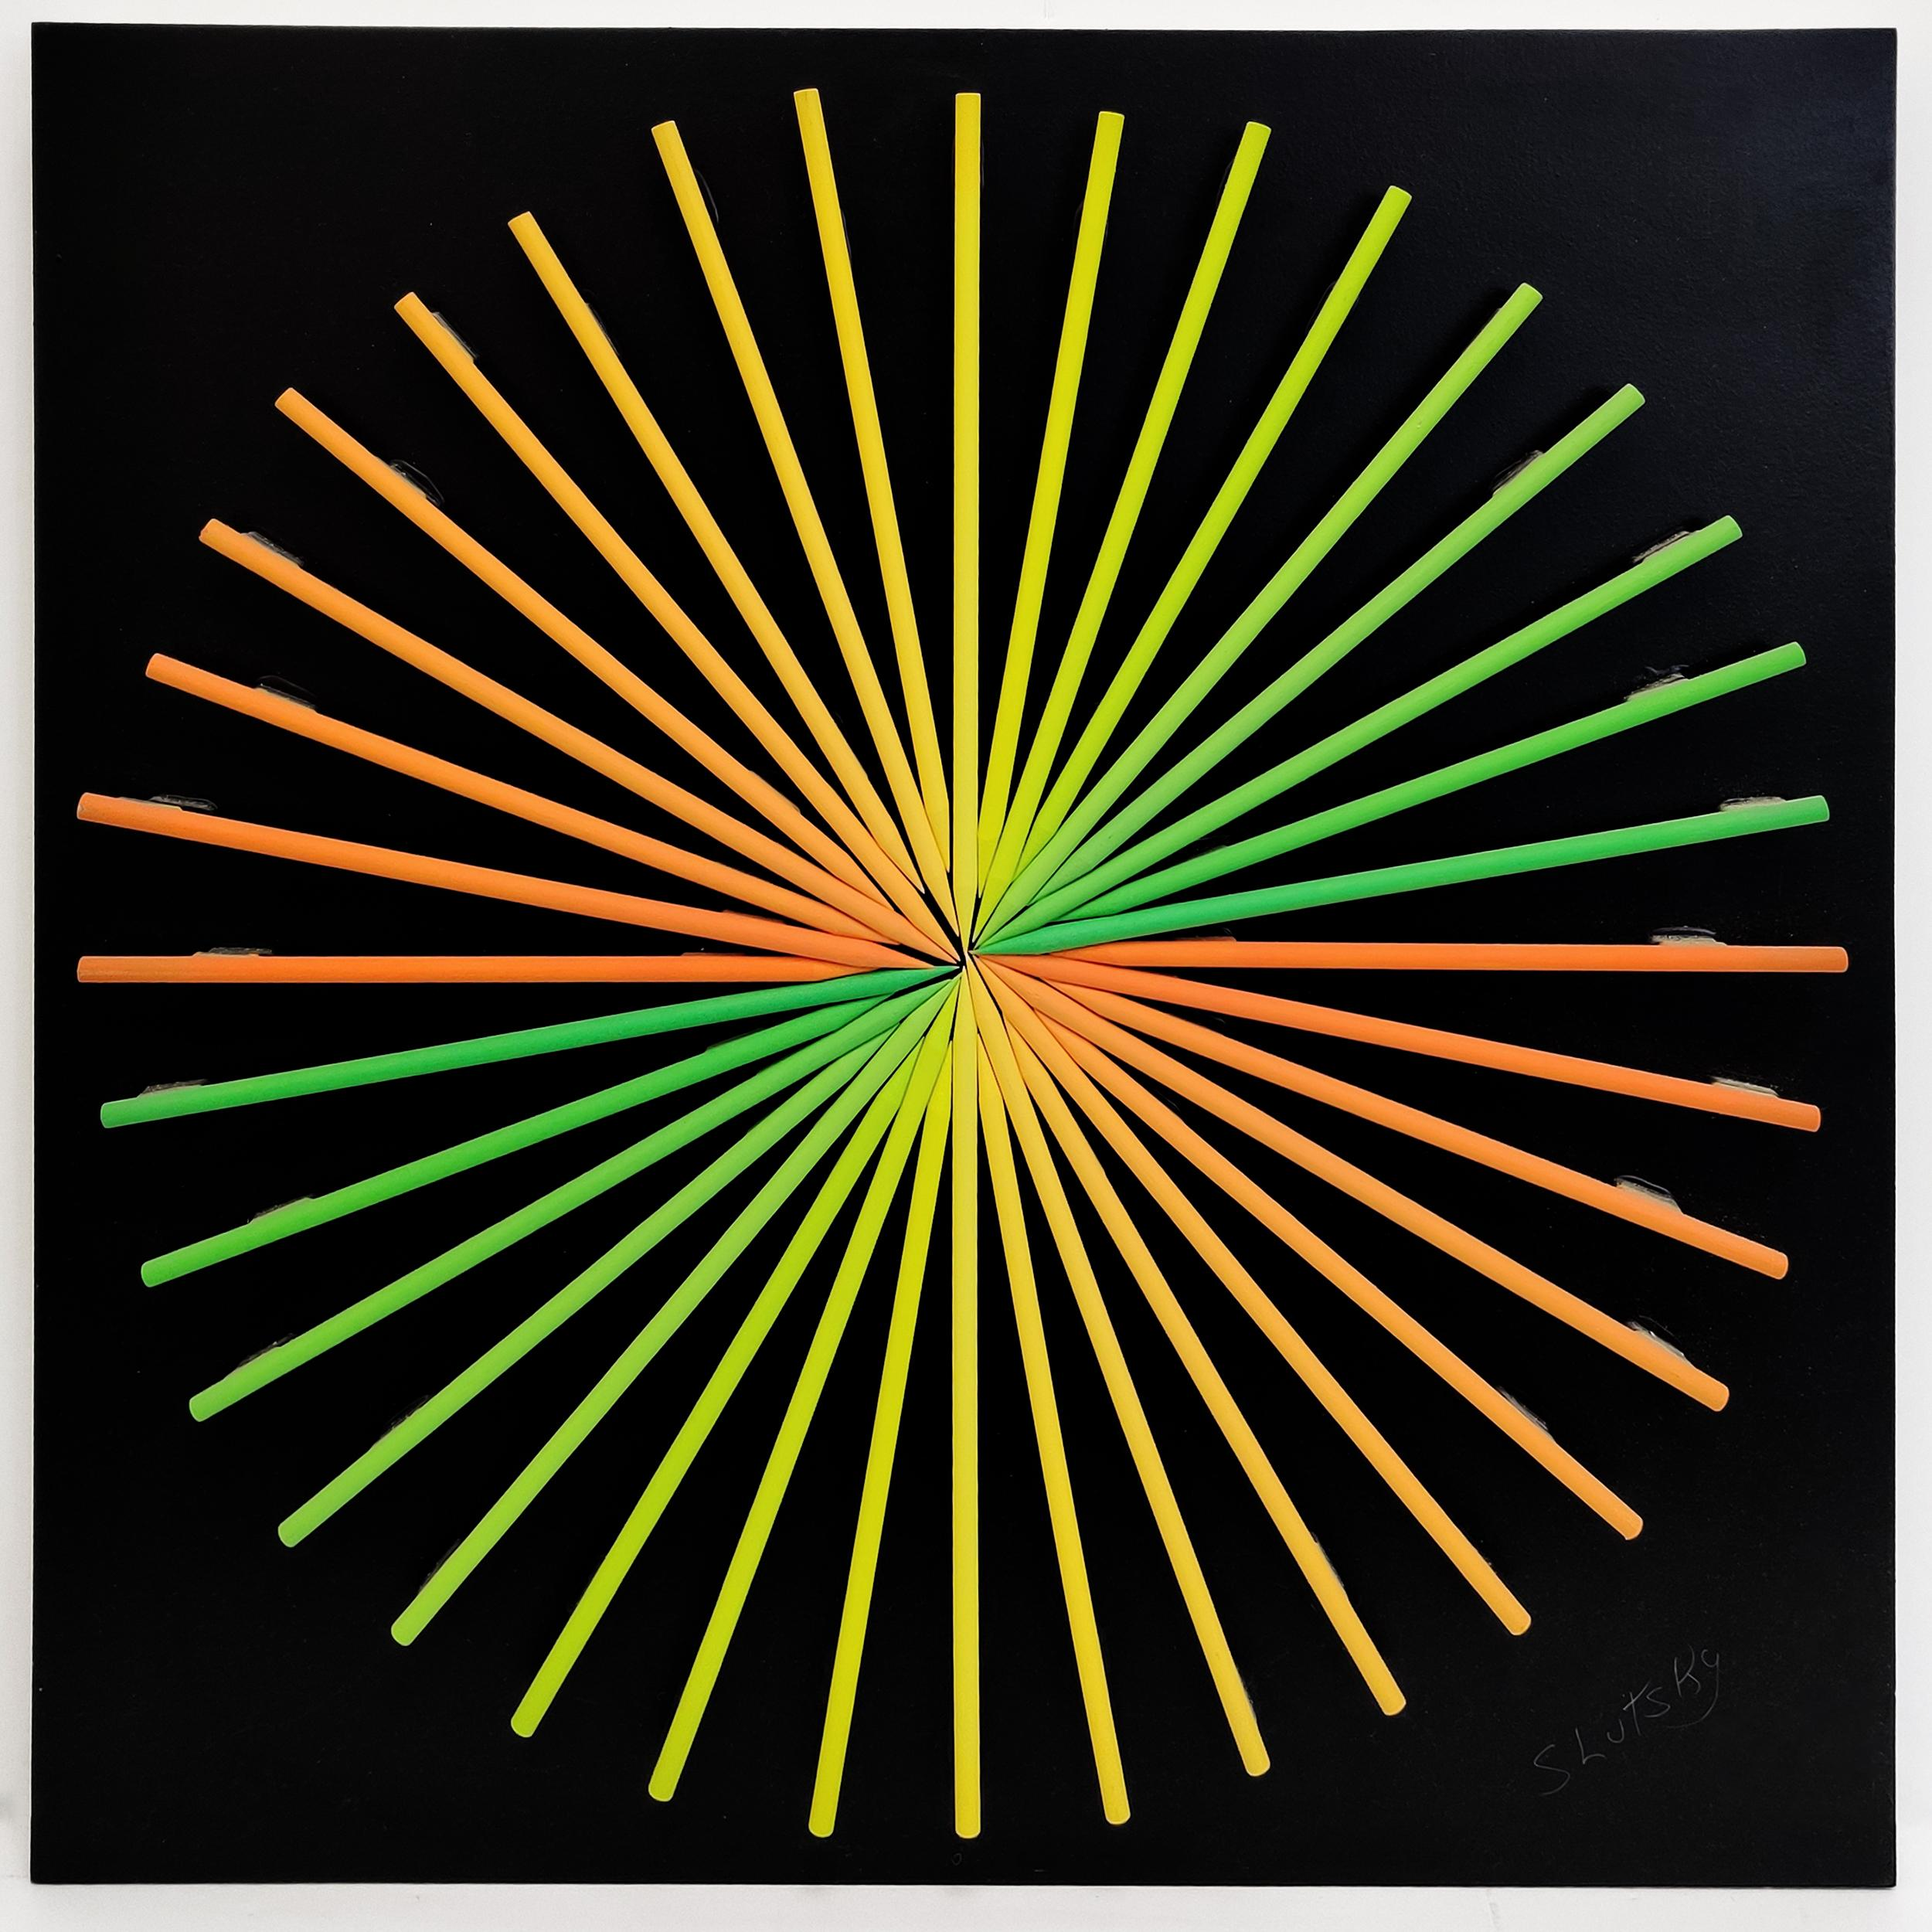 SUNBURST (DIMENSIONAL PIECES OF WOOD WITH MAGNETS)